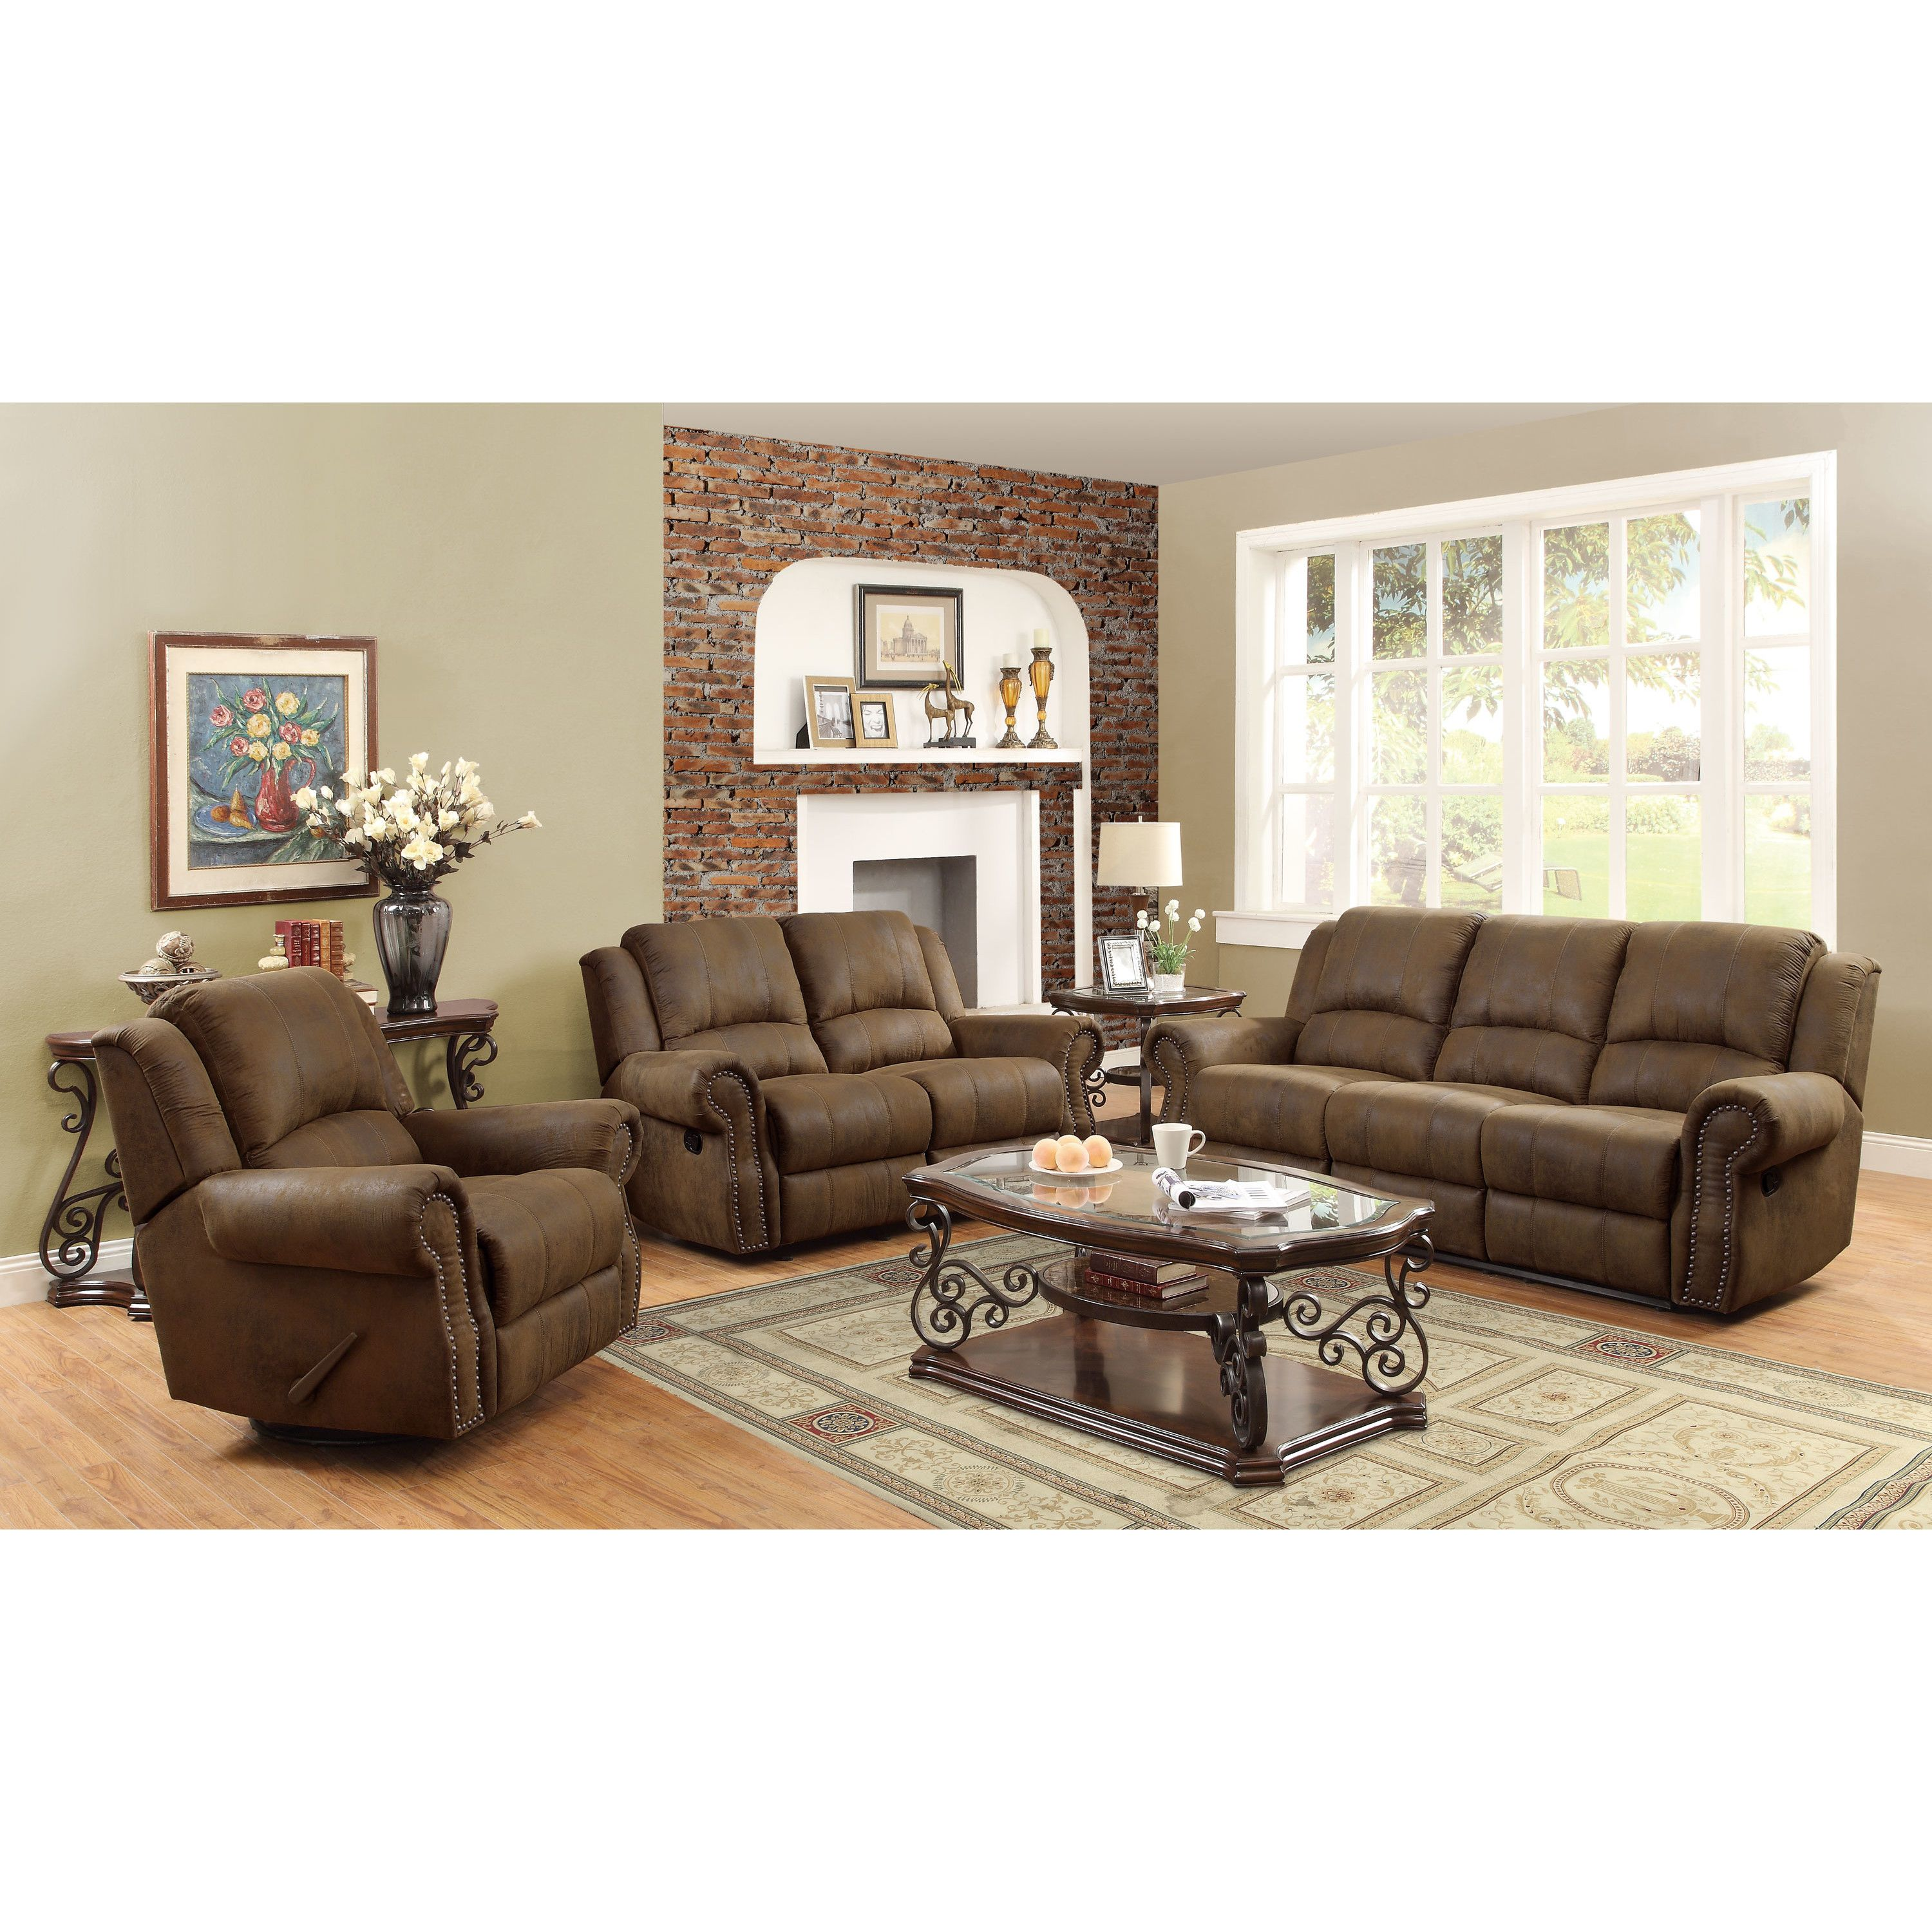 Wonderful Darby Home Co Mcmahon Reclining Sofa